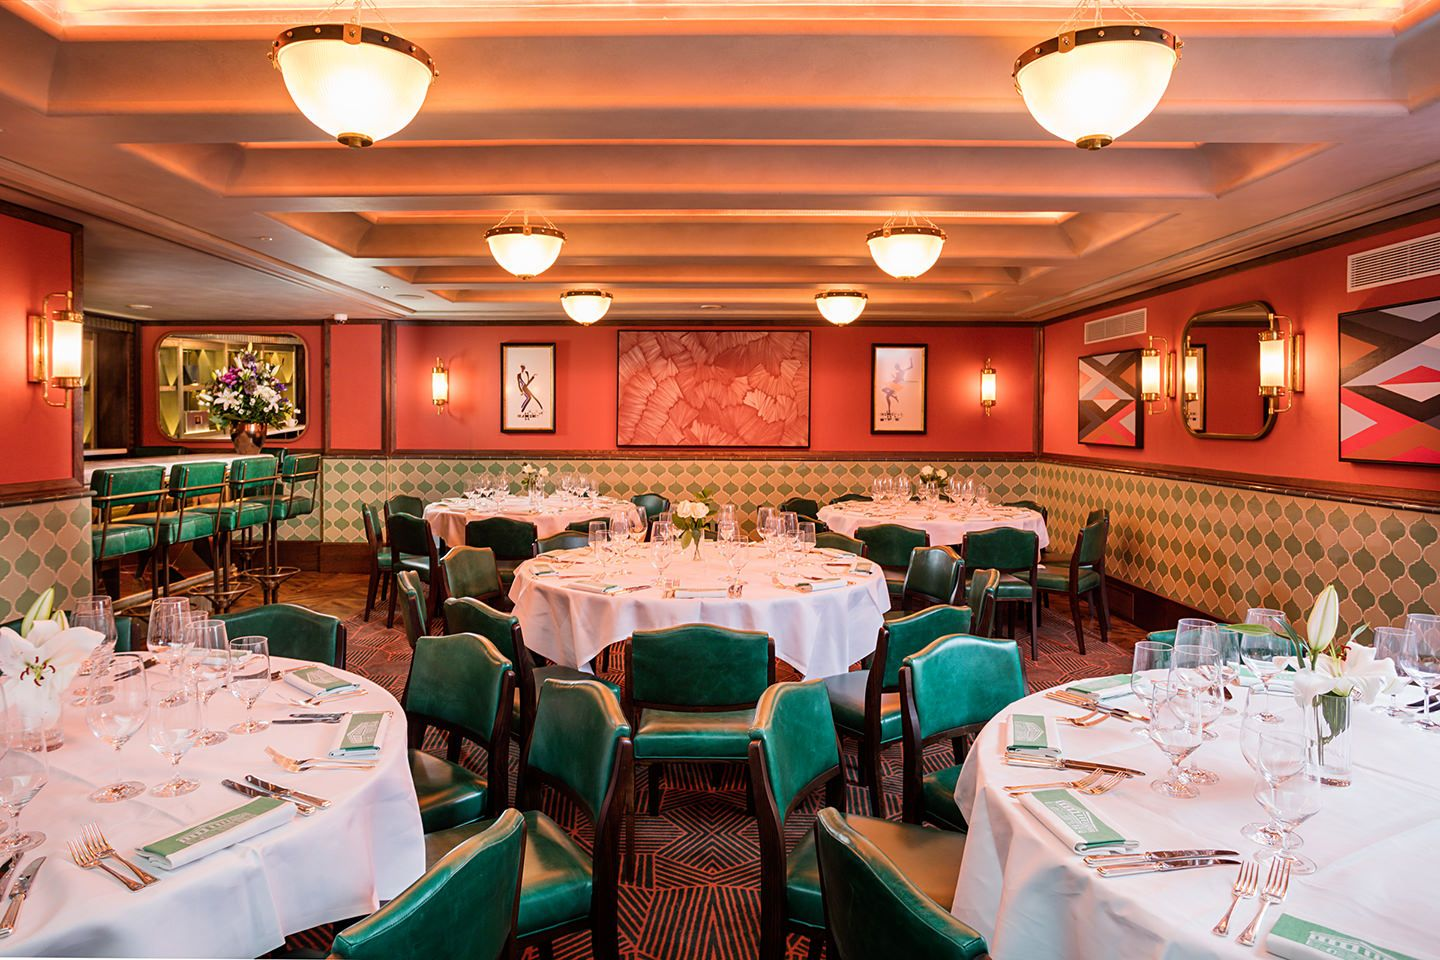 Smith U0026 Wollensky London   Private Dining Room   Theodore Roosevelt Room   # London #